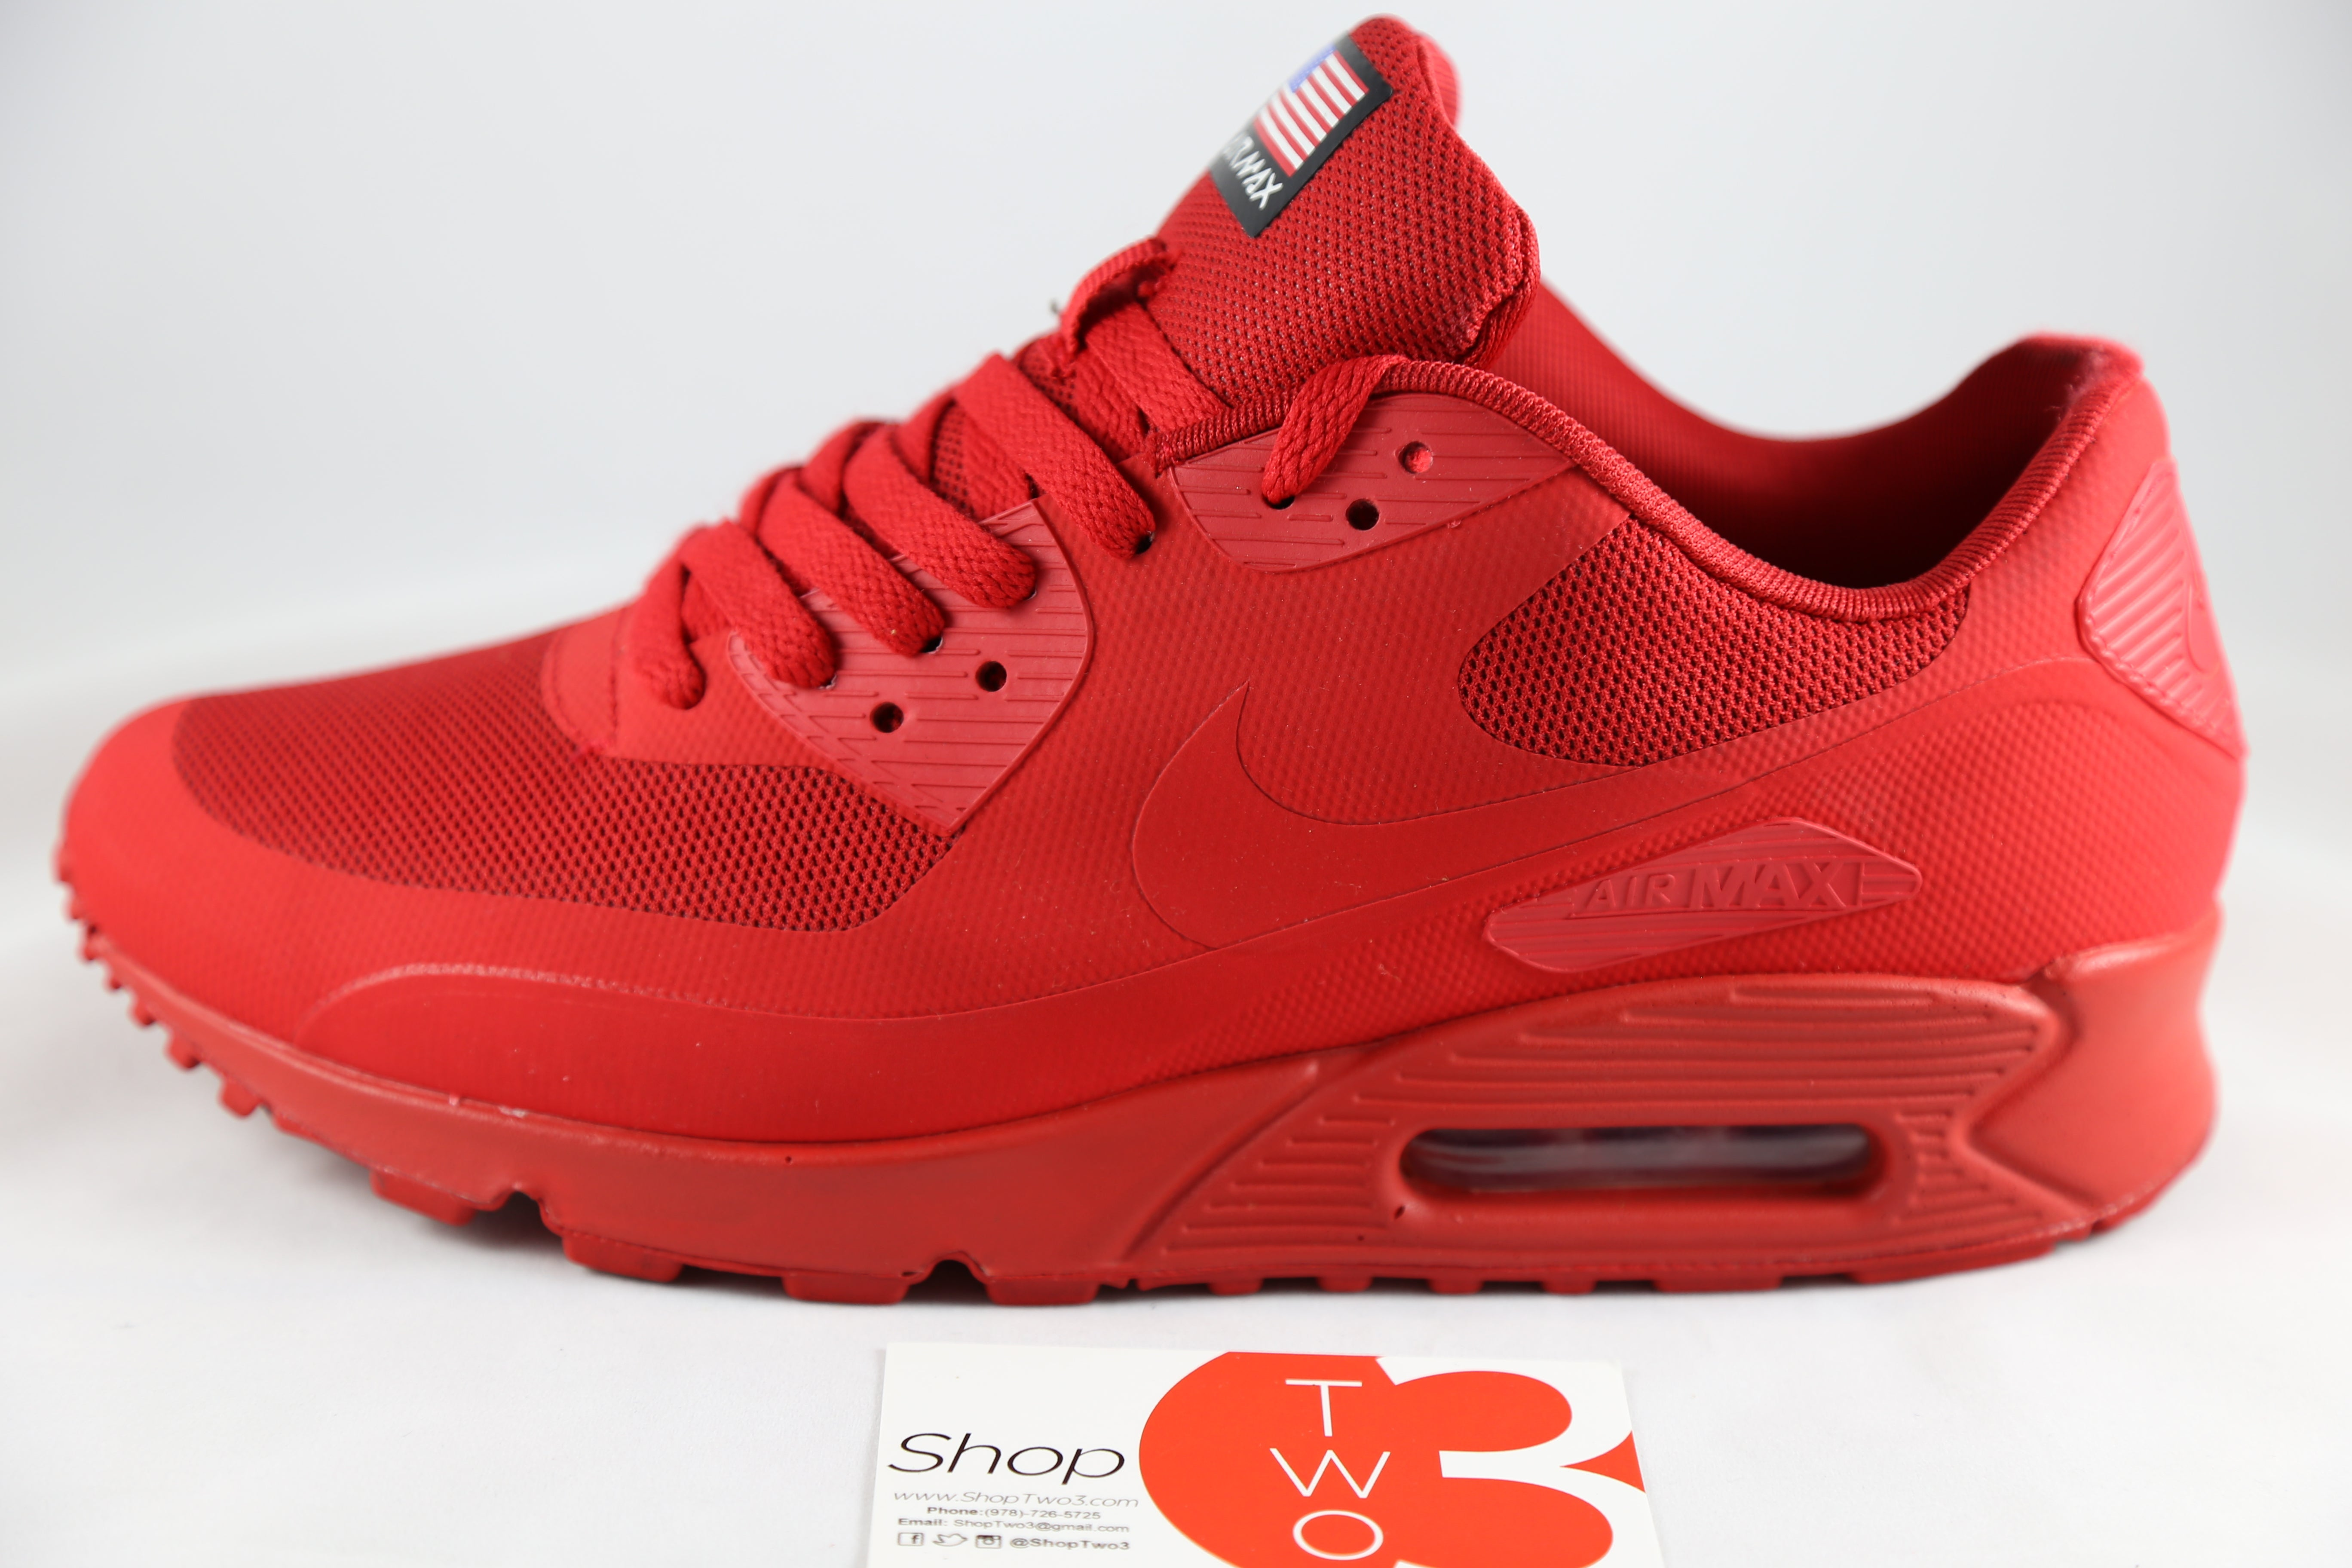 meilleure sélection 6d9ad 1c036 ireland nike air max 90 qs hyperfuse red yeezy b3f7b d947b